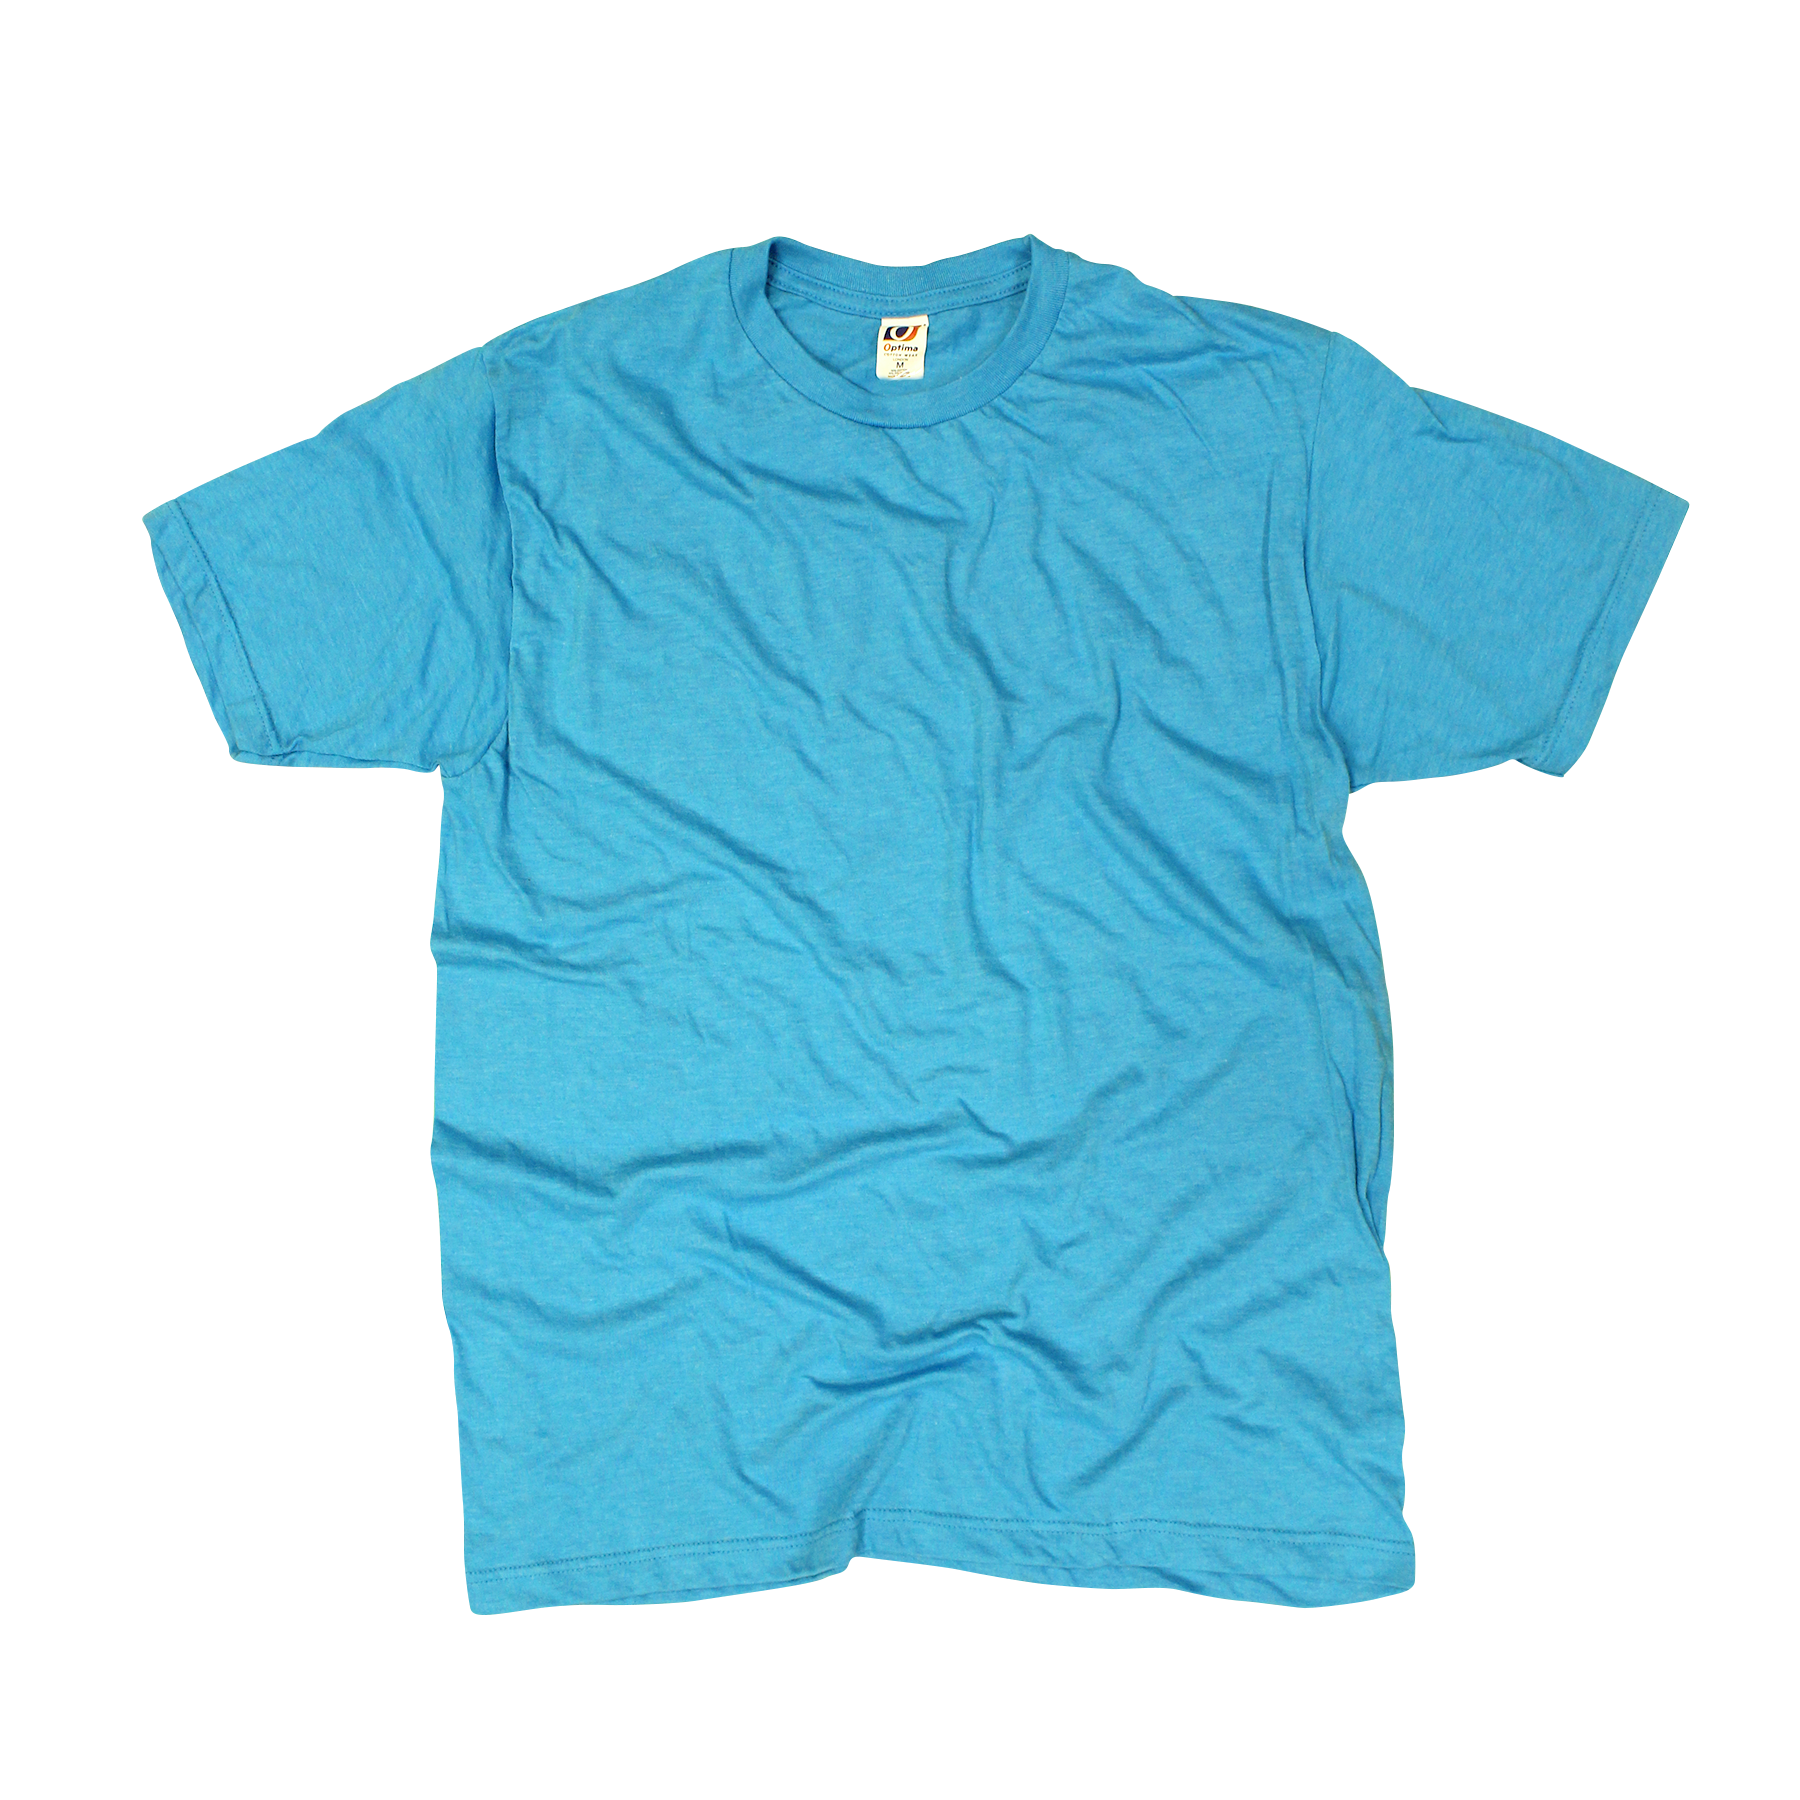 Optima Aqua Heather - Medium - Men's Clearance